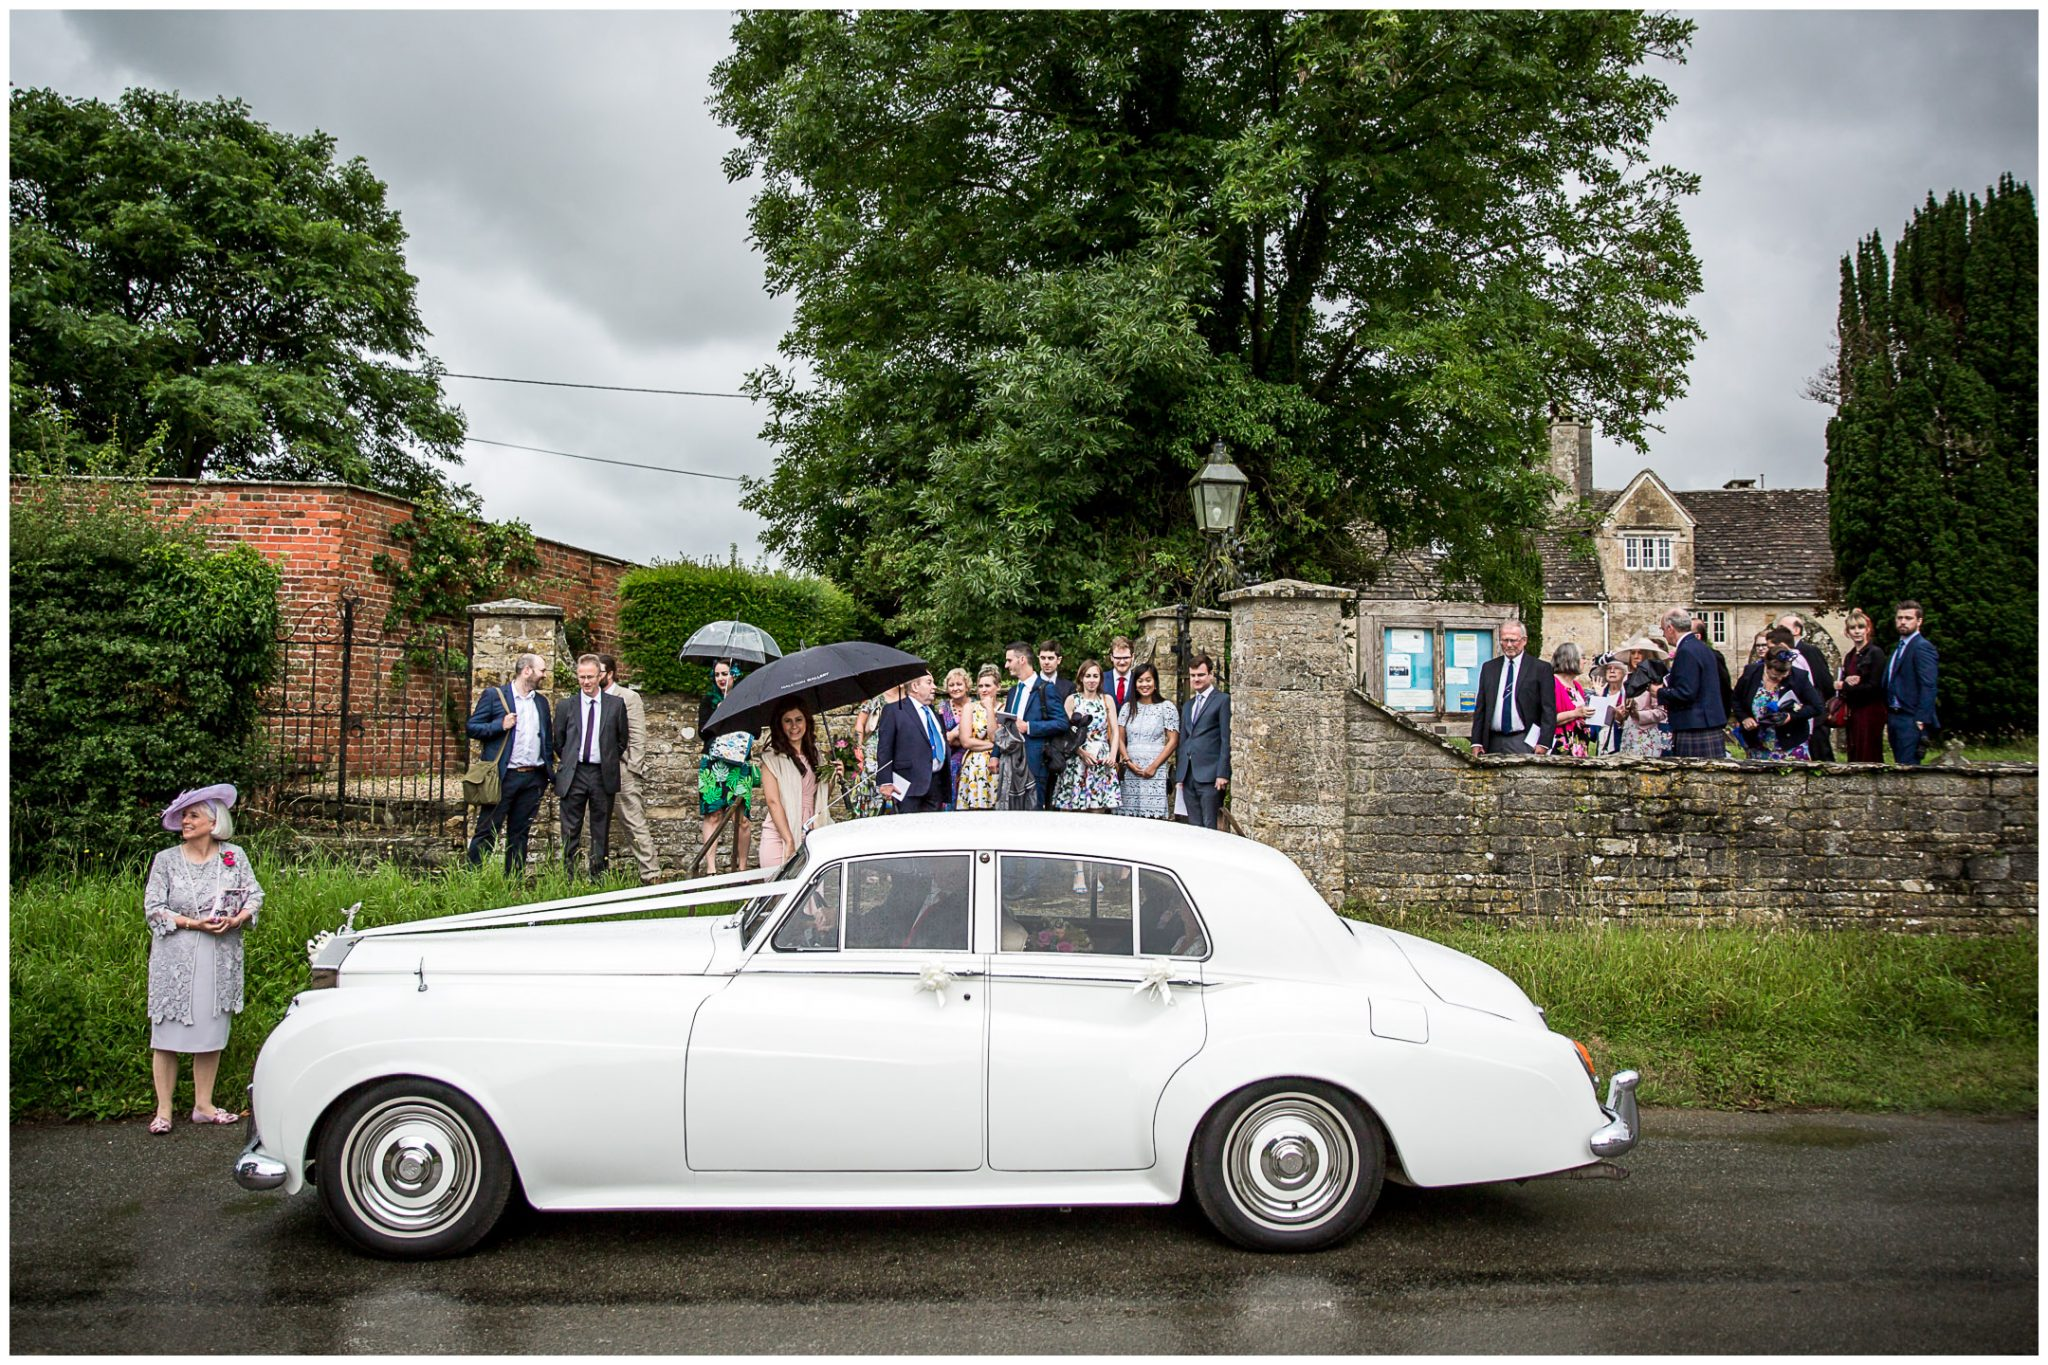 The wedding car departs the church for the reception venue